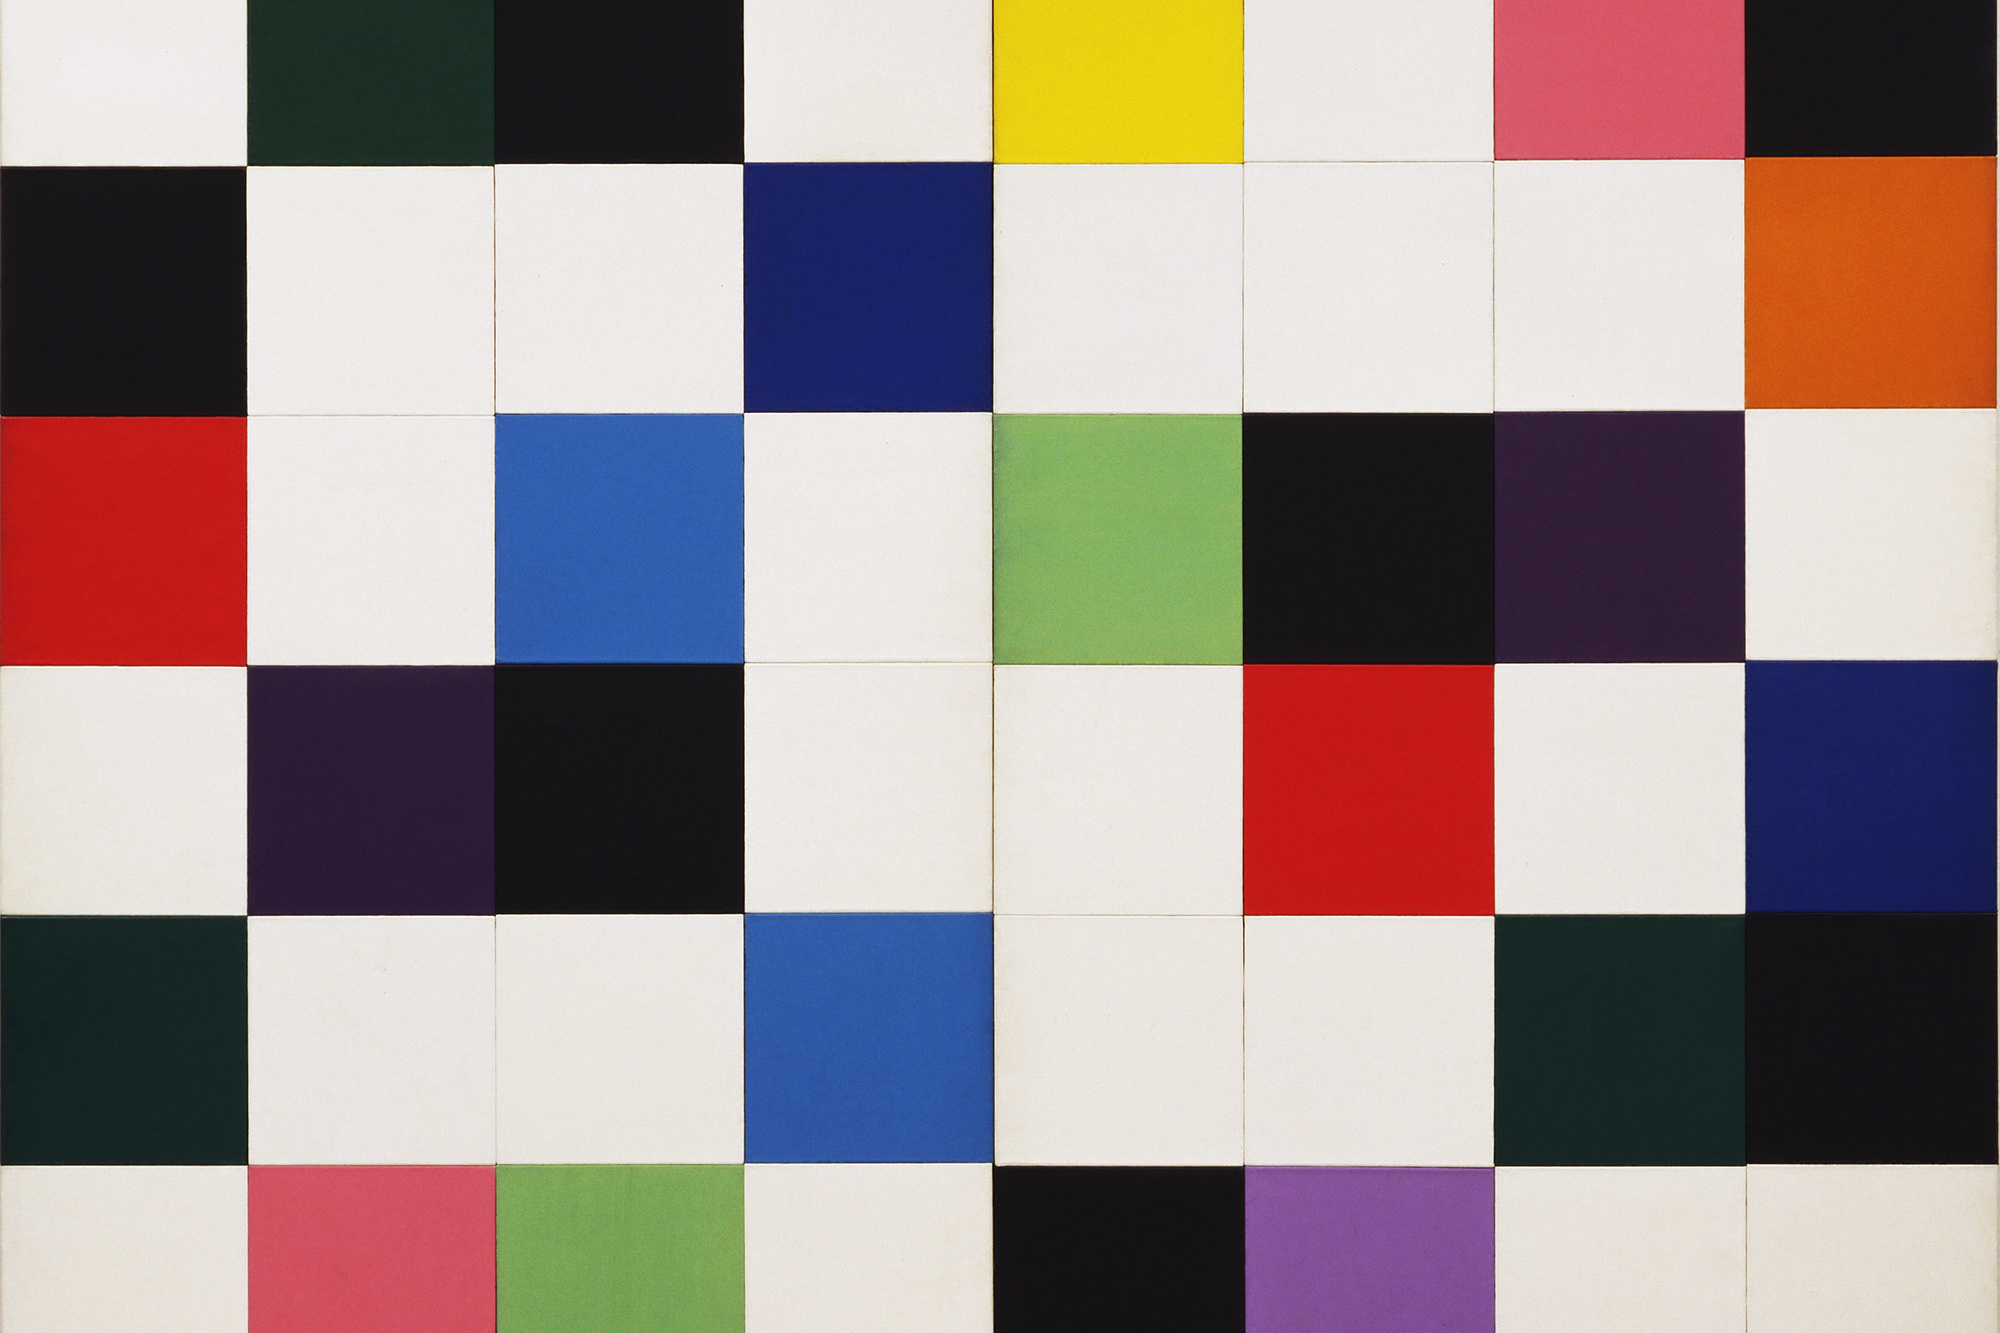 Ellsworth Kelly. Colors for a Large Wall. (1951). Oil on canvas. Sixty-four wood panels, overall: 7′ 10 1/2″ × 7′ 10 1/2″ (240 × 240 cm). The Museum of Modern Art, New York. Gift of the artist © 2008 Ellsworth Kelly